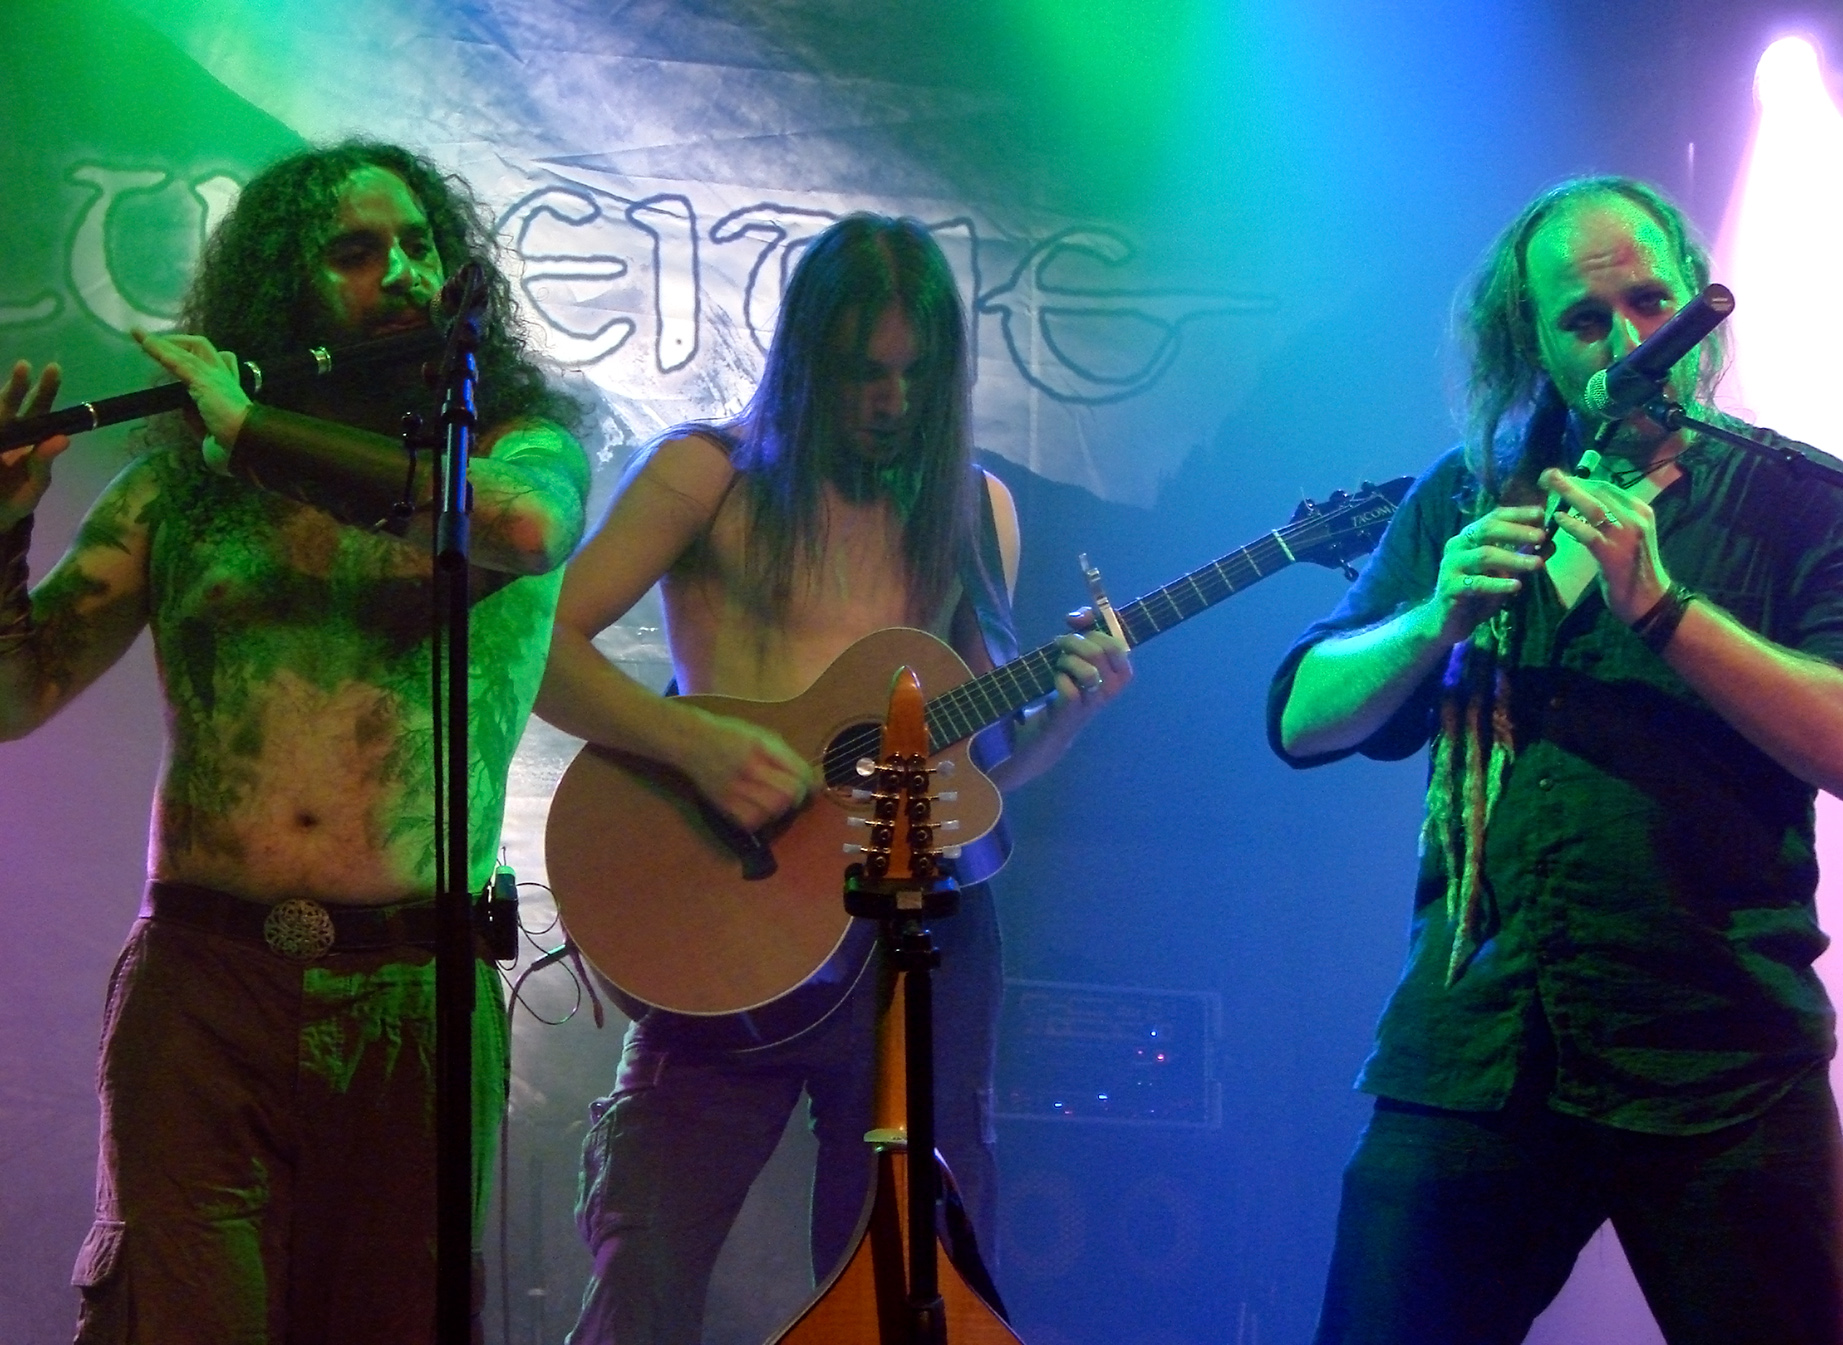 Images of eluveitie lyrics lyric wiki song music wallpaper picture